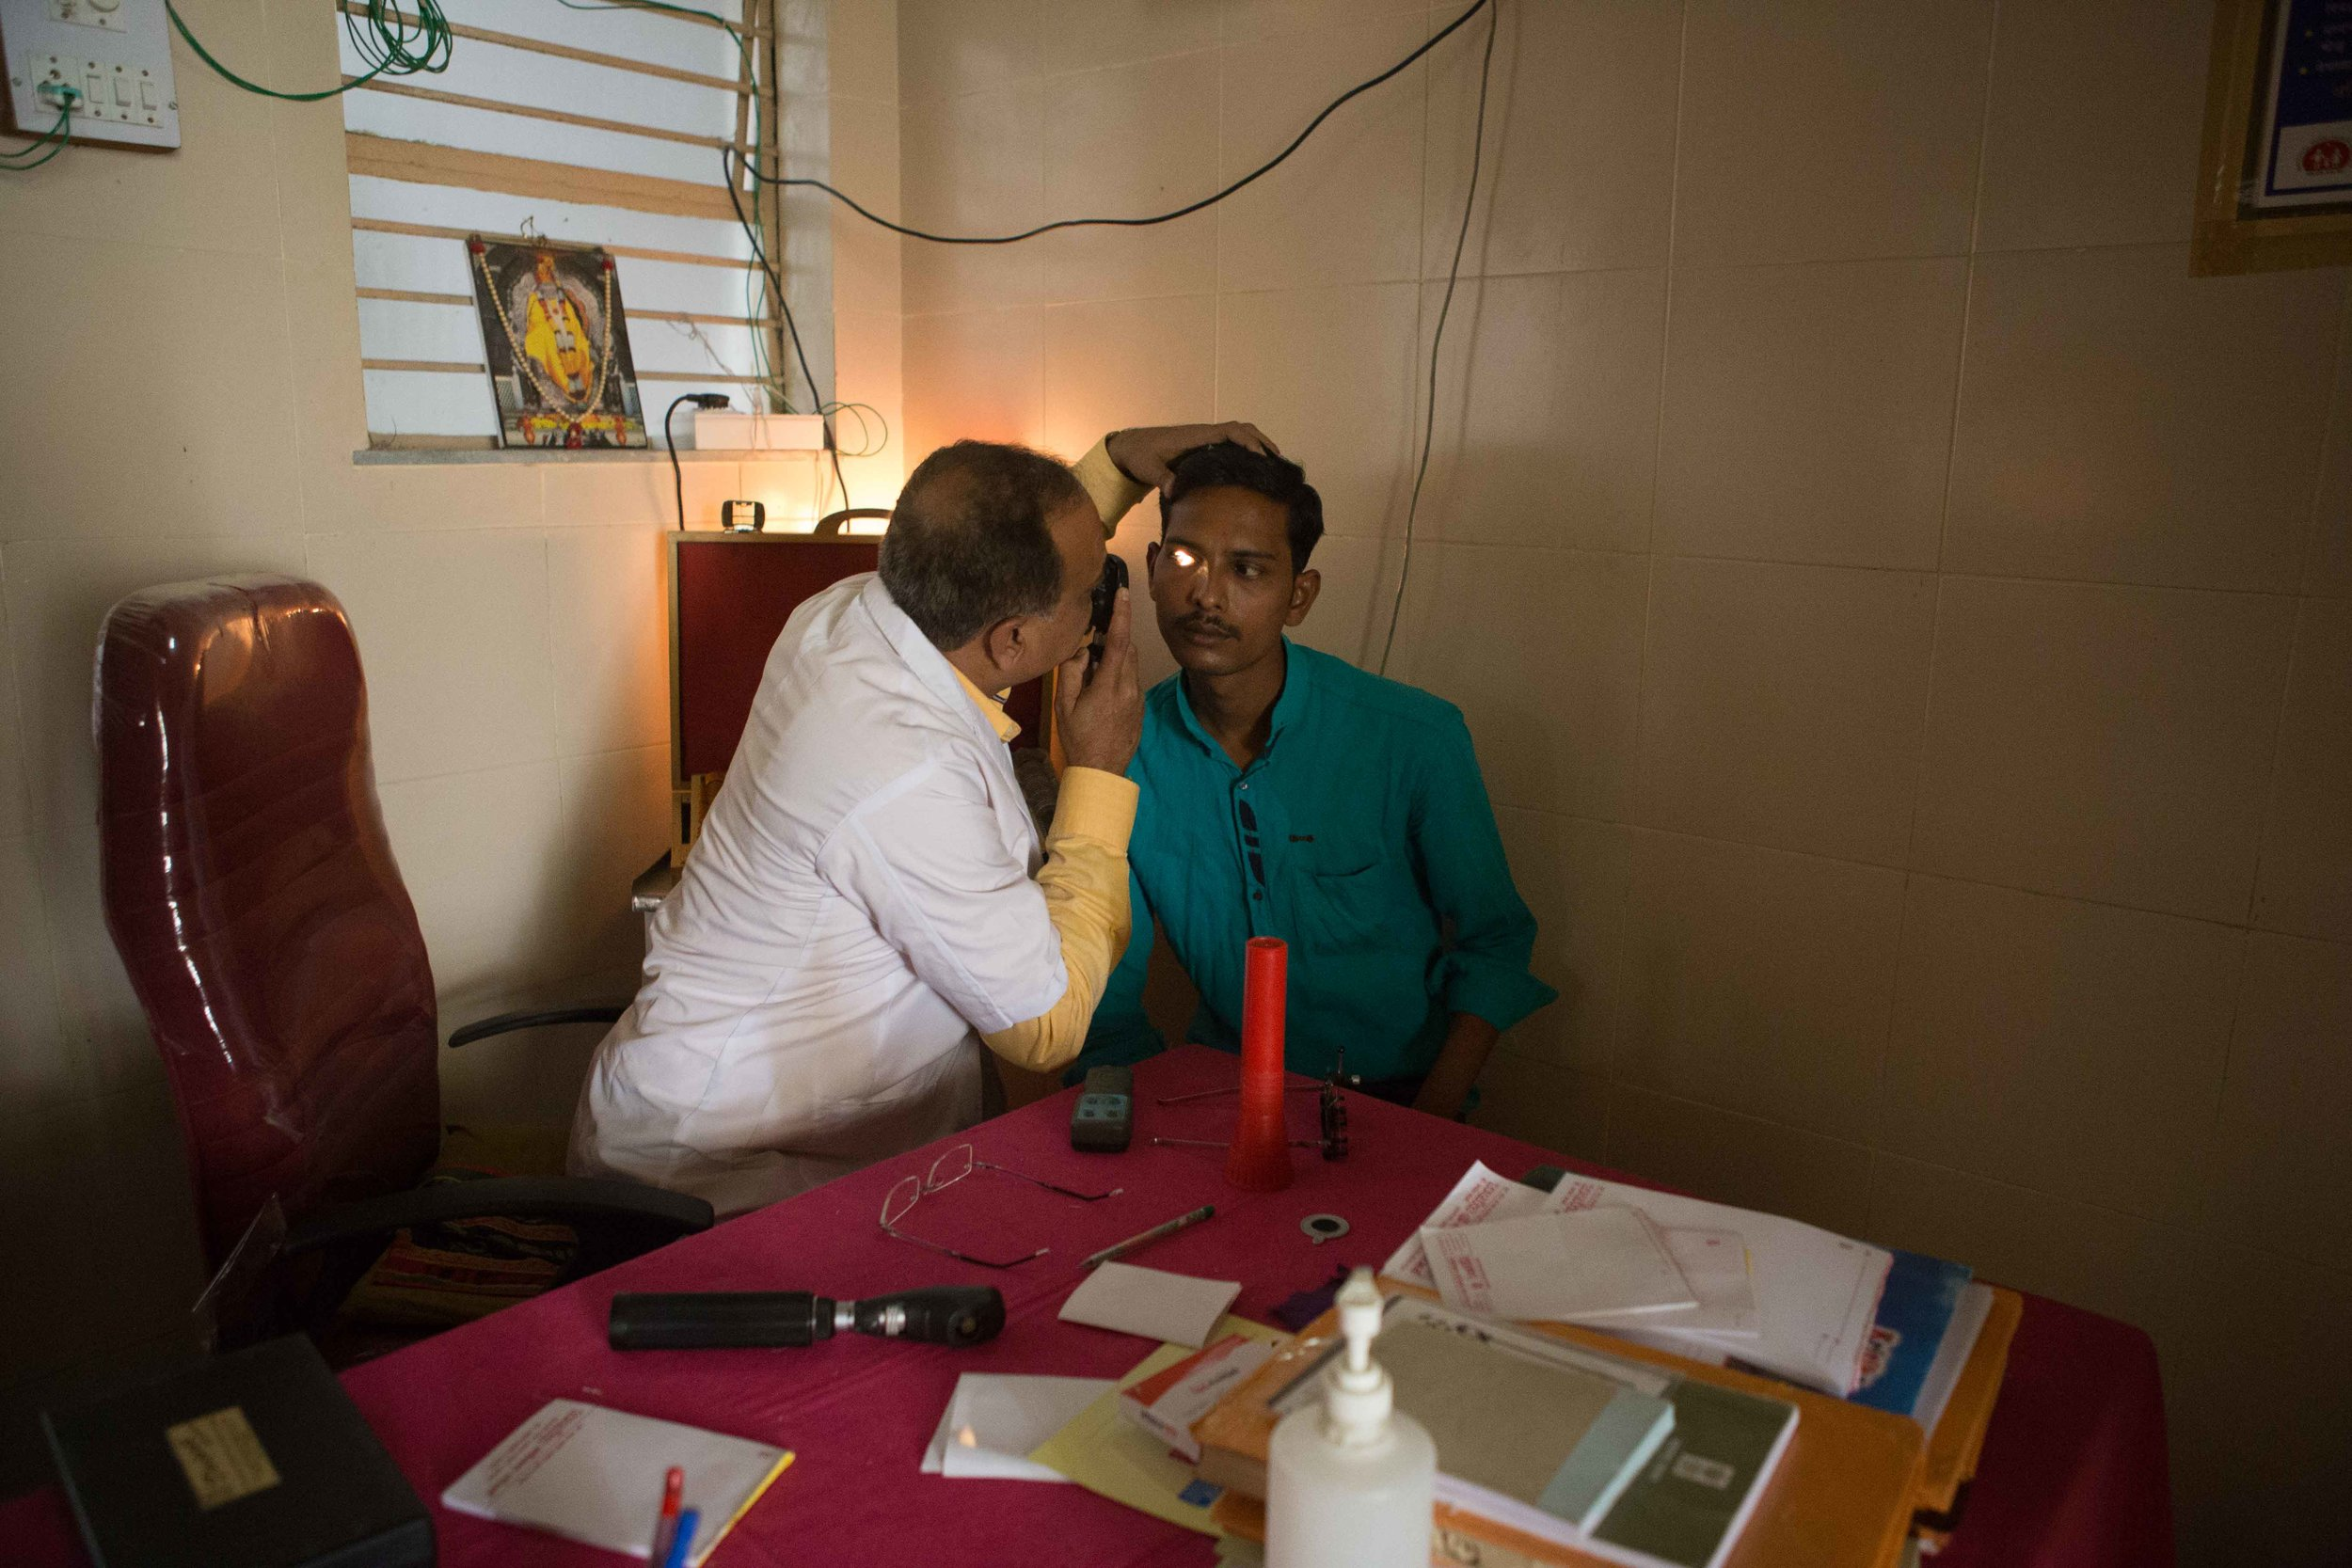 Initial screening of patients with problems related to vision, District Hospital Vizianagaram, Andhra Prades